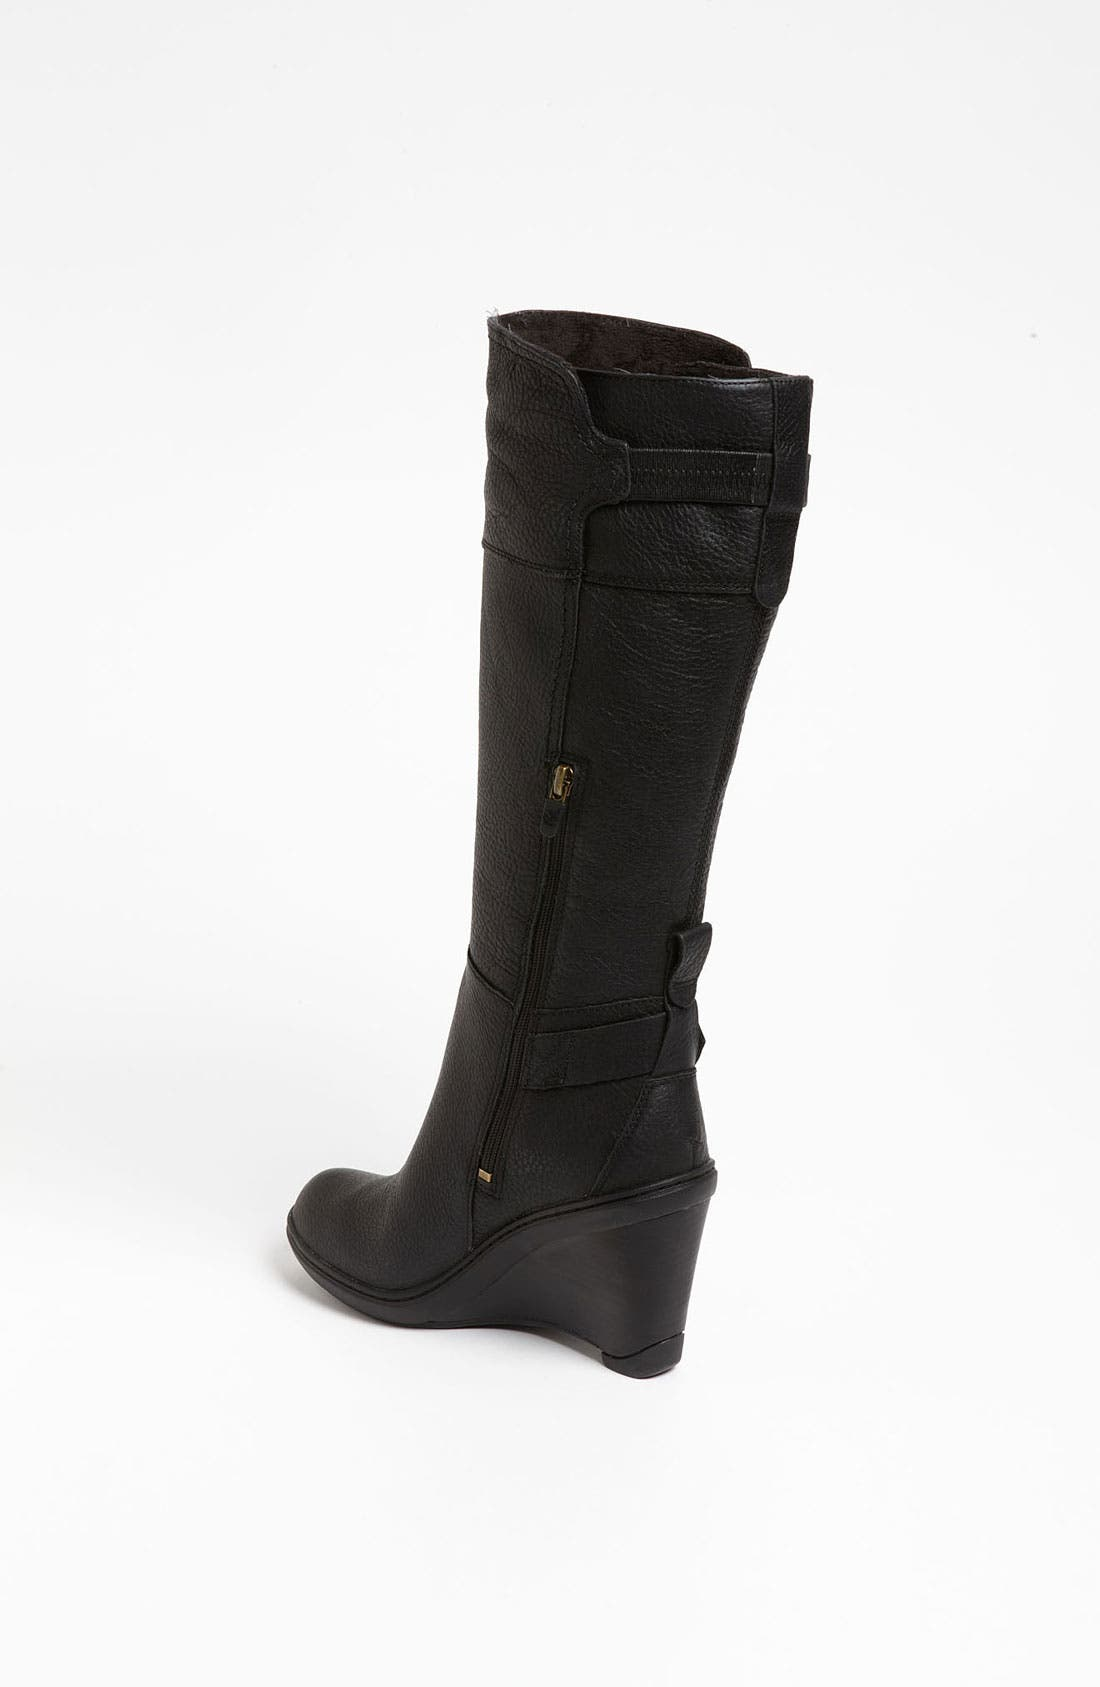 'Stratham Heights' Tall Boot,                             Alternate thumbnail 2, color,                             001